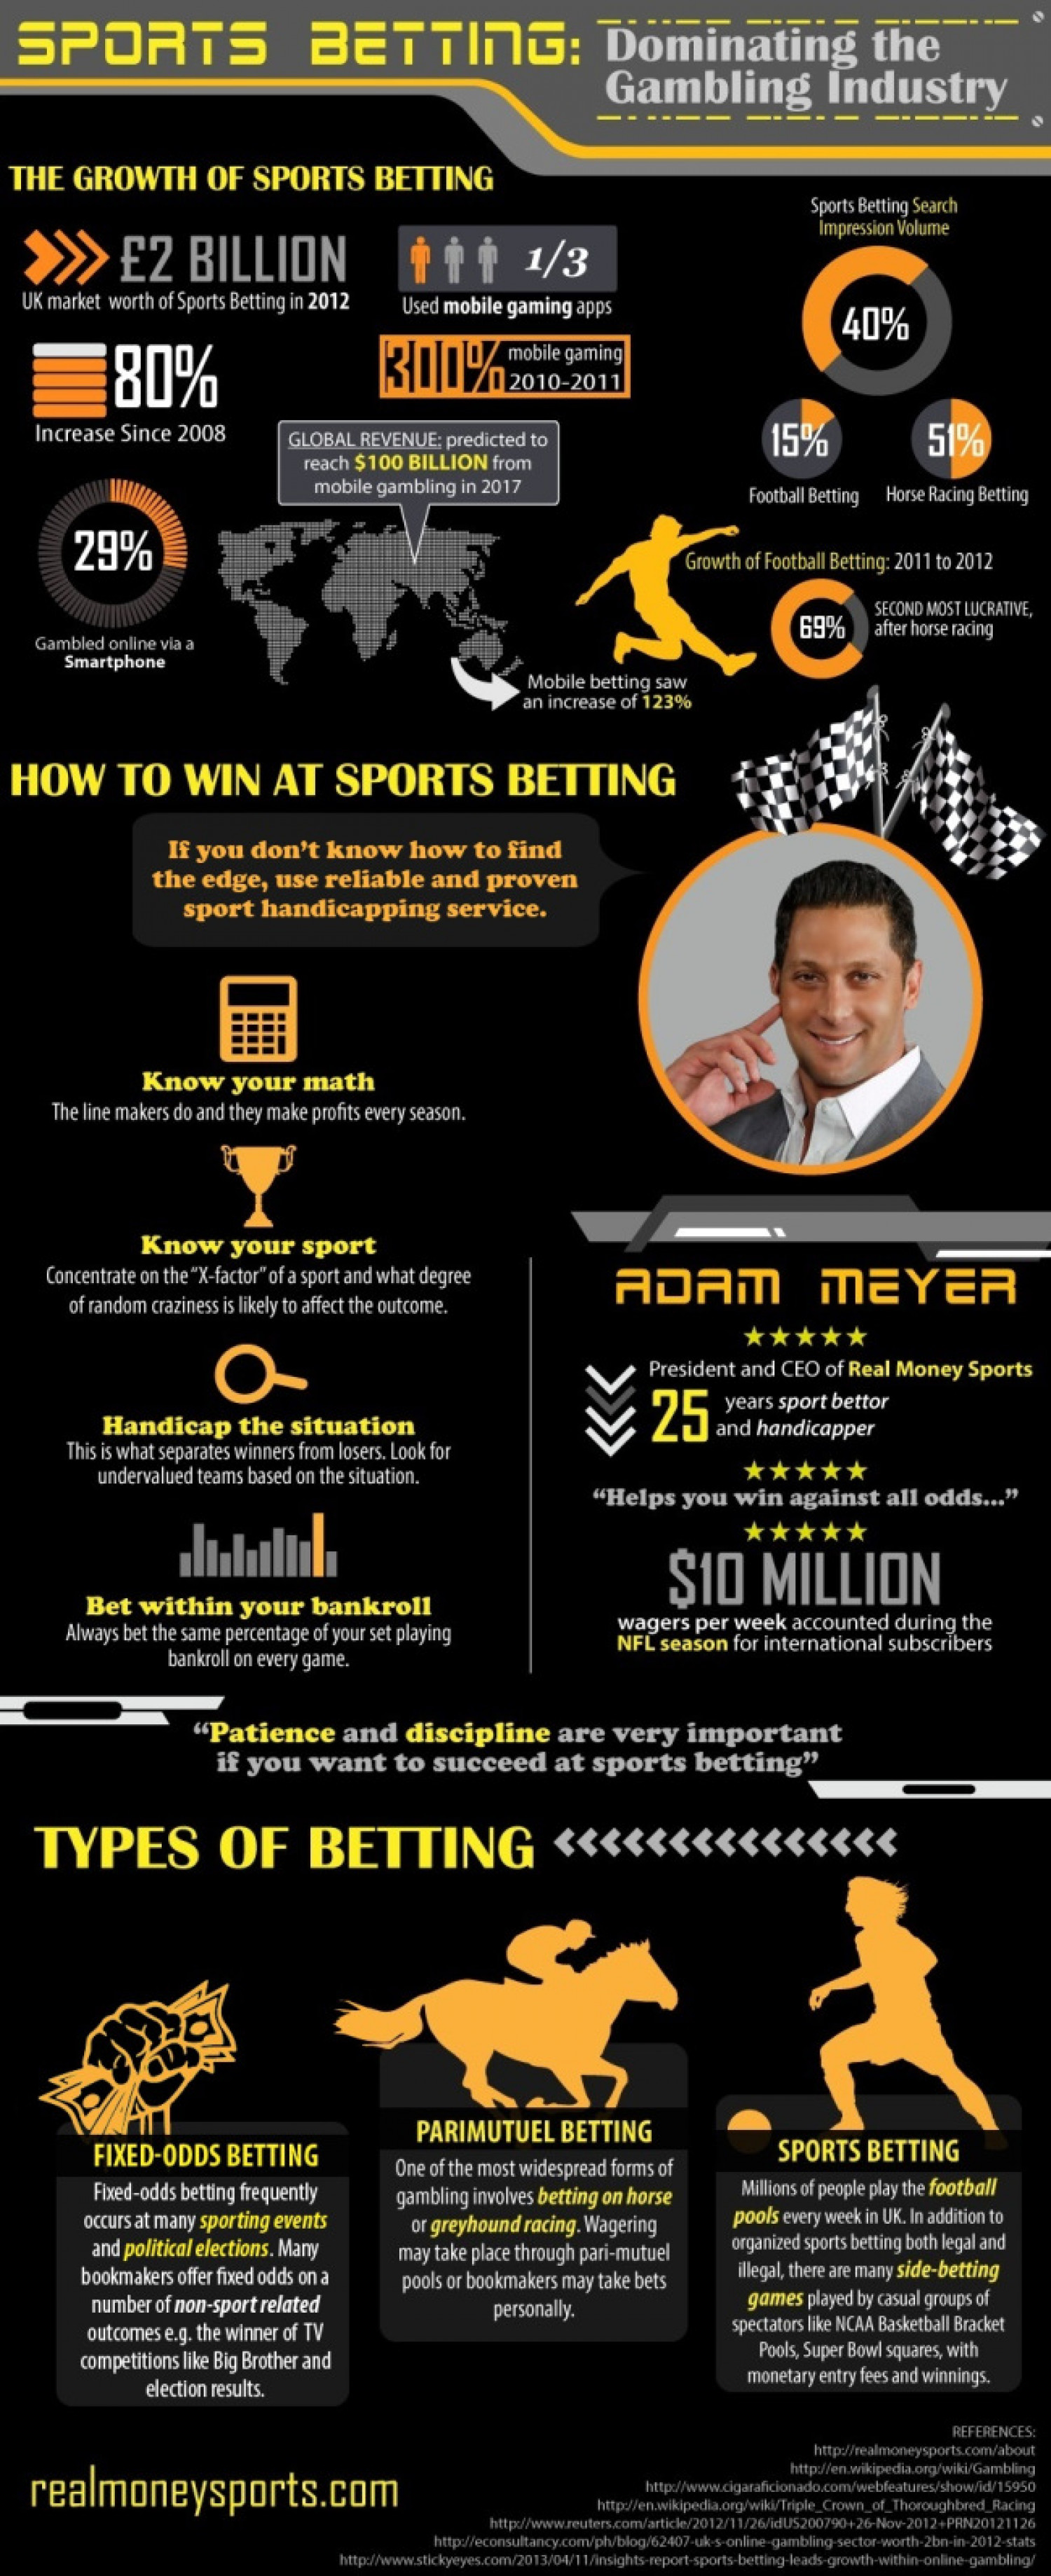 Sports Betting: Dominating The Gambling Industry Infographic